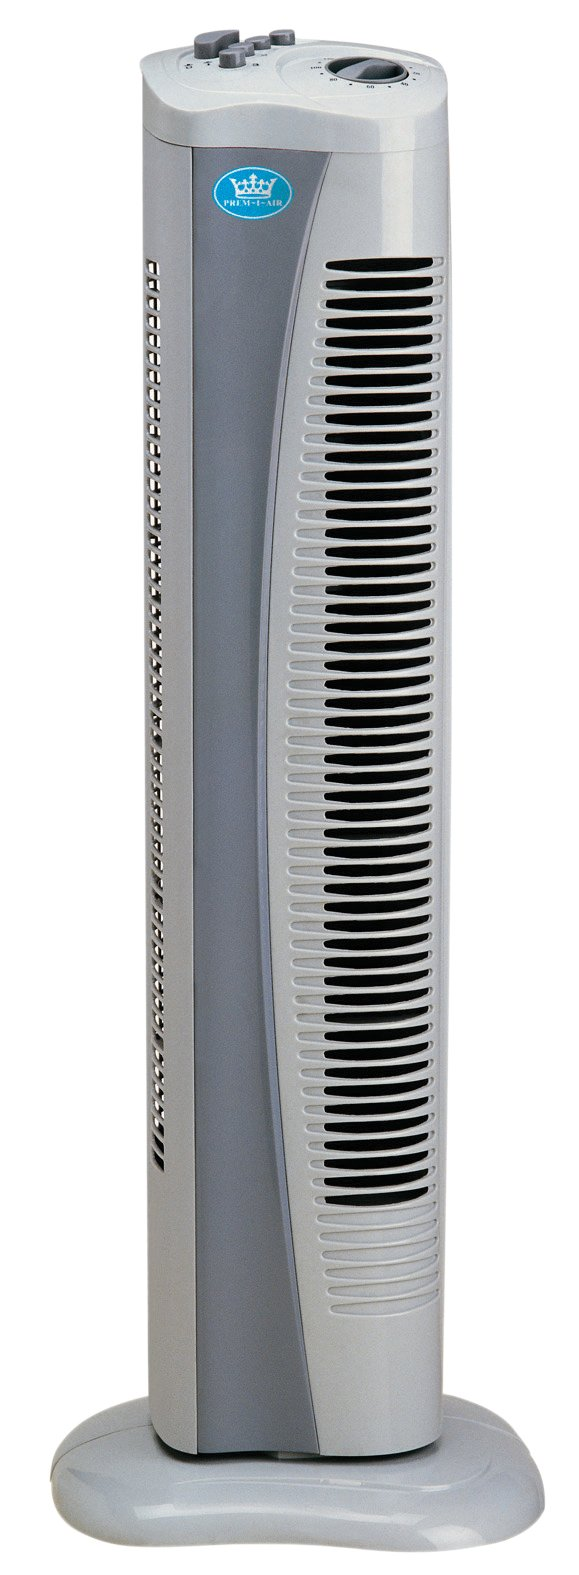 61kKlNwPmAL - High Quality Prem-I-Air slim Tower Fan with 3 fan speed settings and Timer